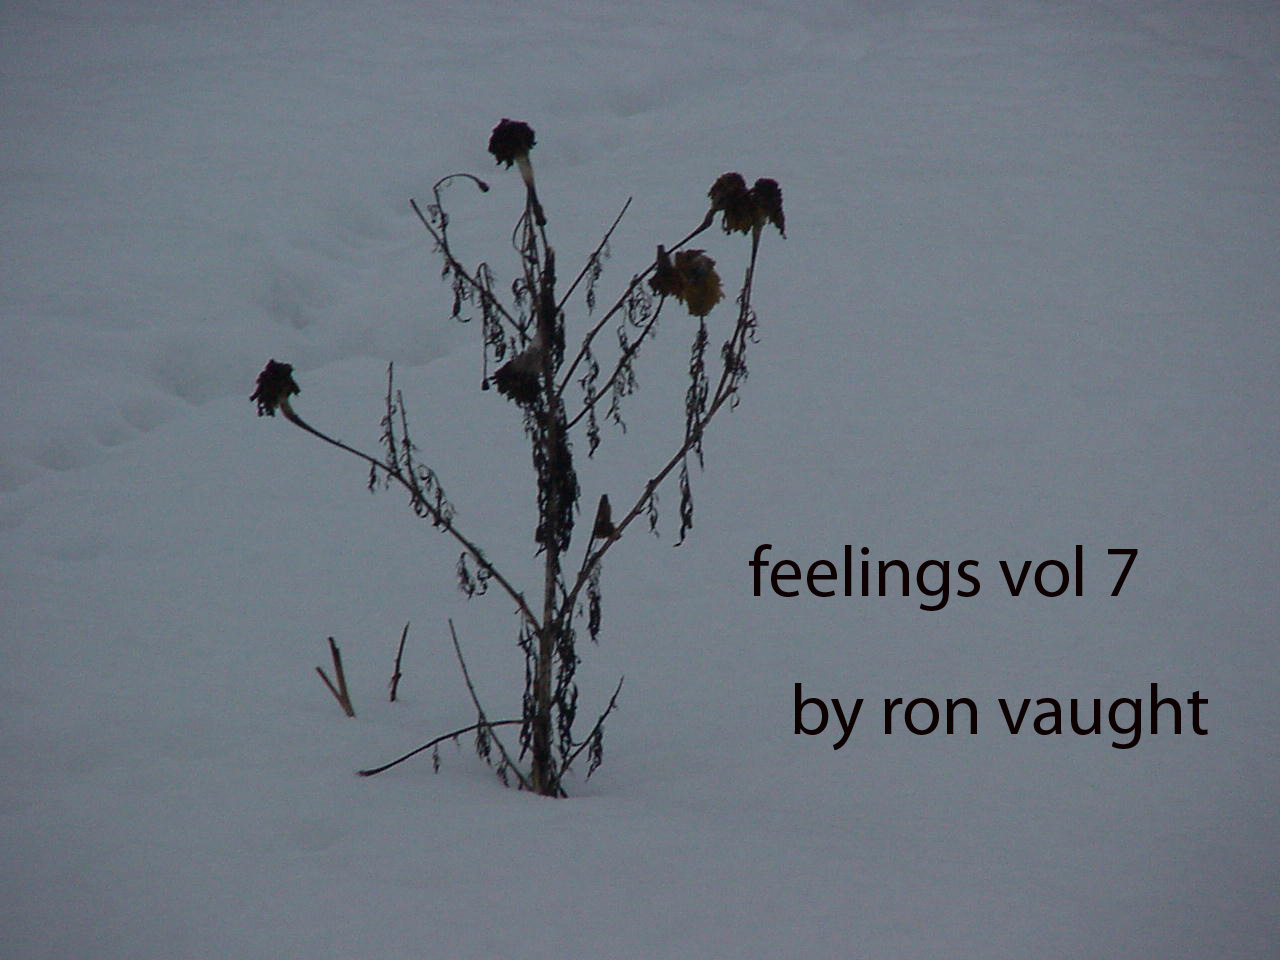 Feelings, vol 7